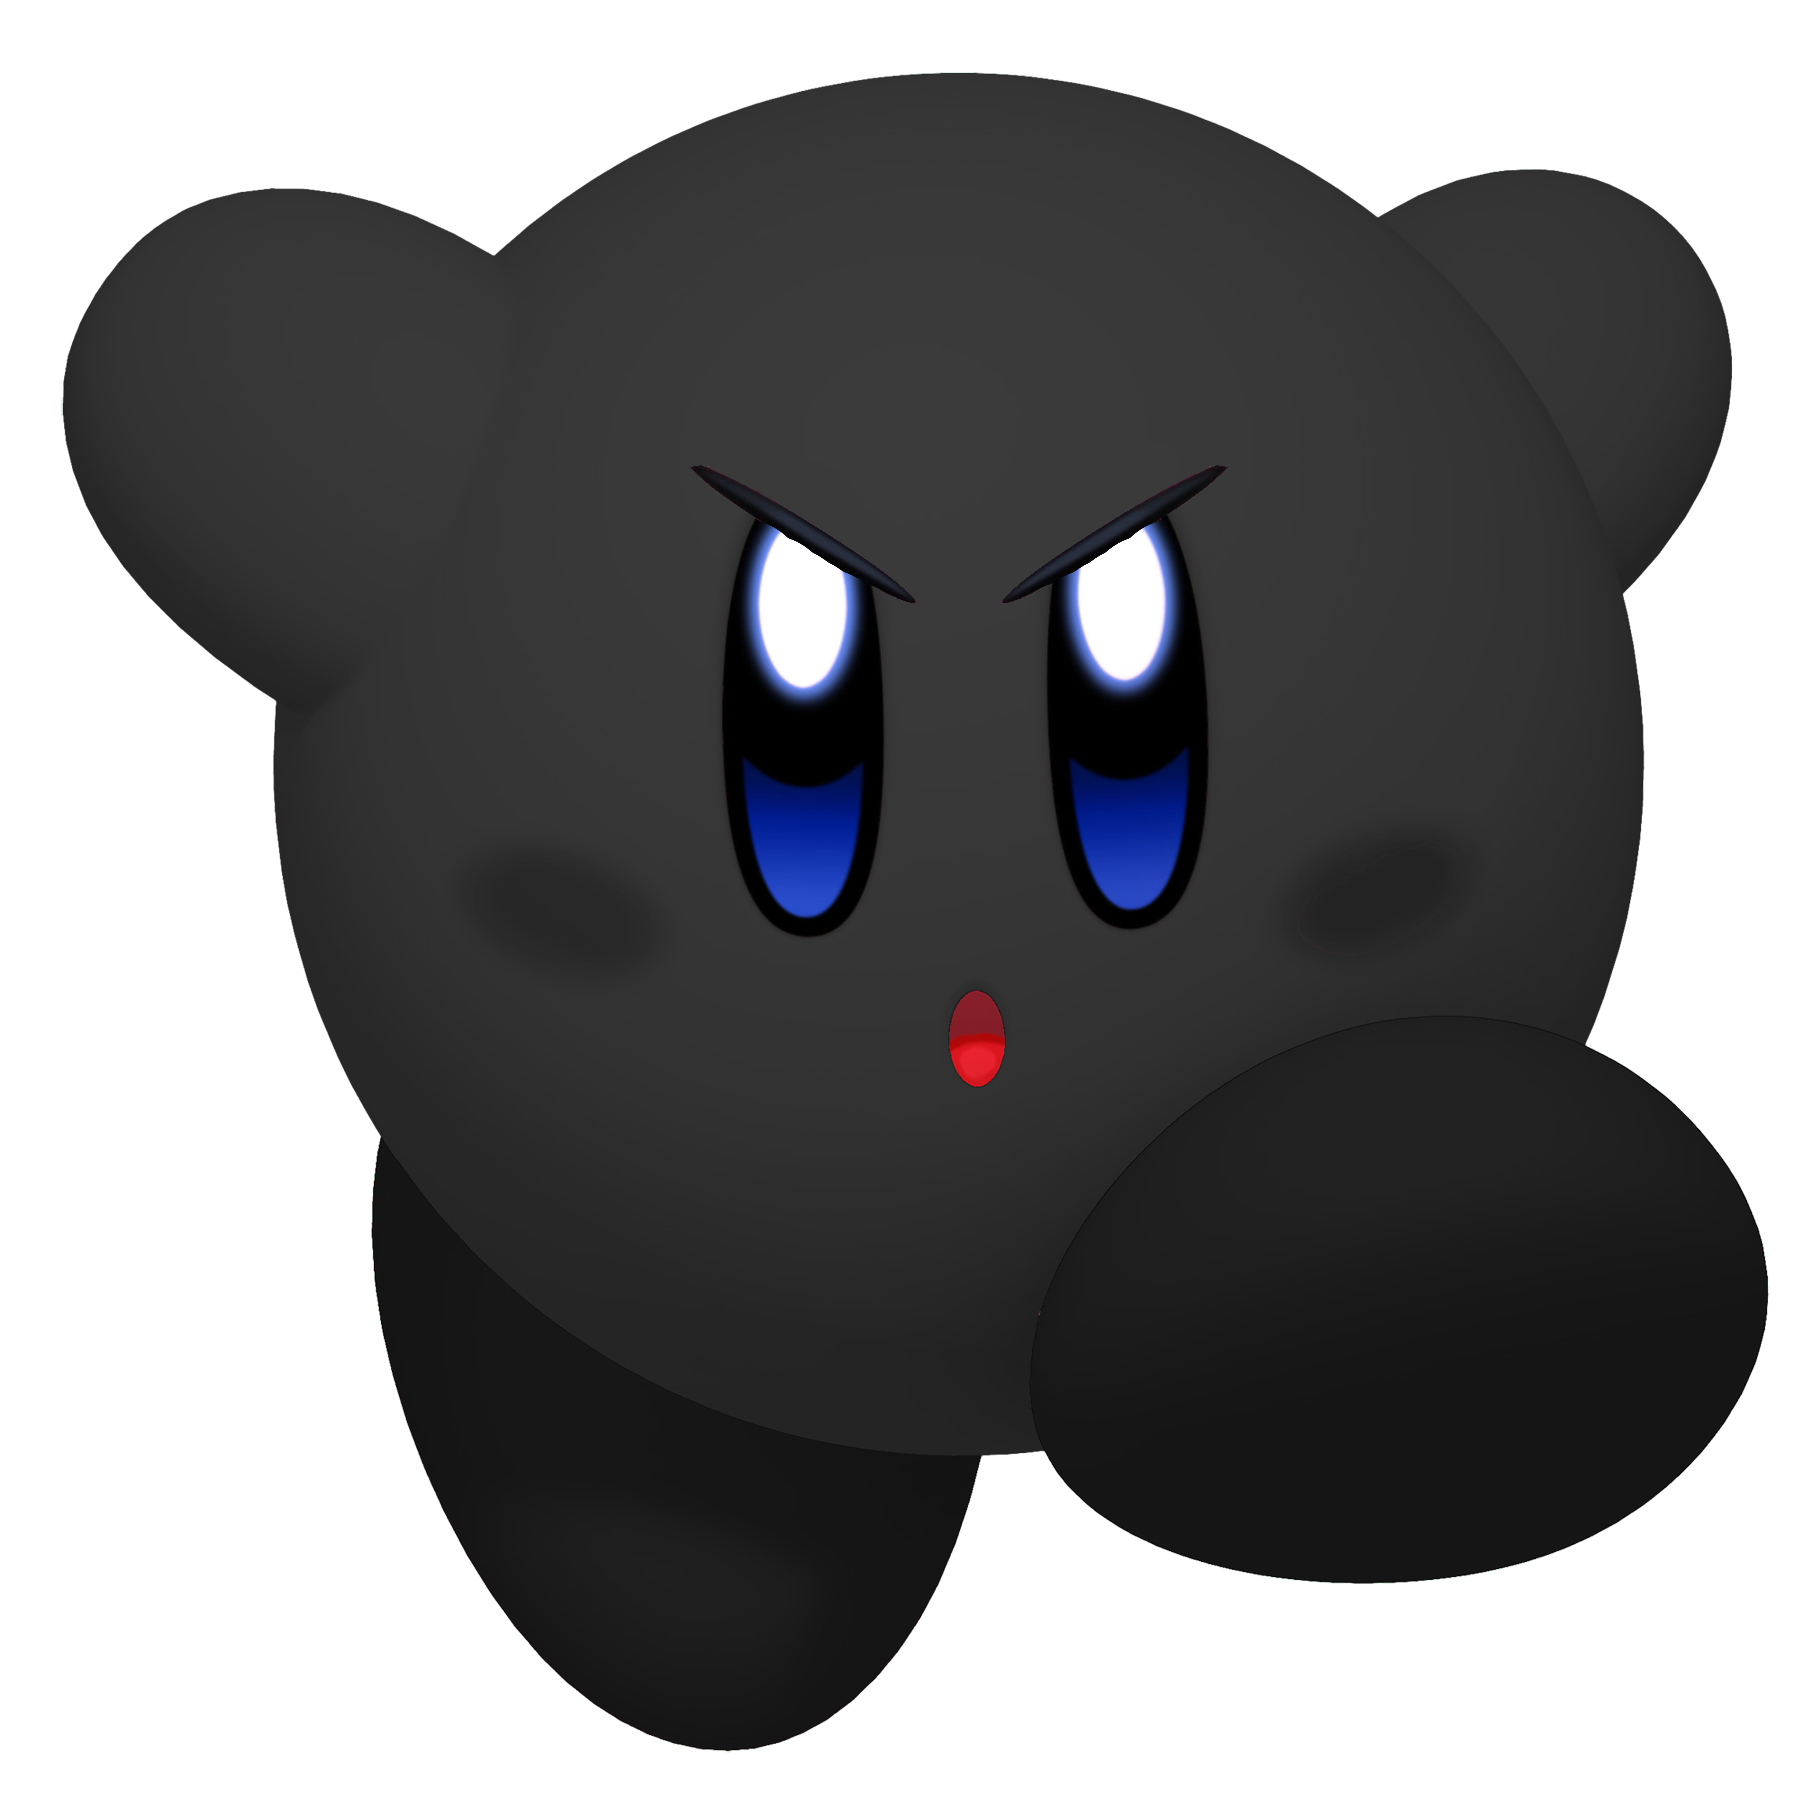 Image Shadow Kirby Kdl3d Png Fantendo Nintendo Fanon Wiki Fandom Powered By Wikia